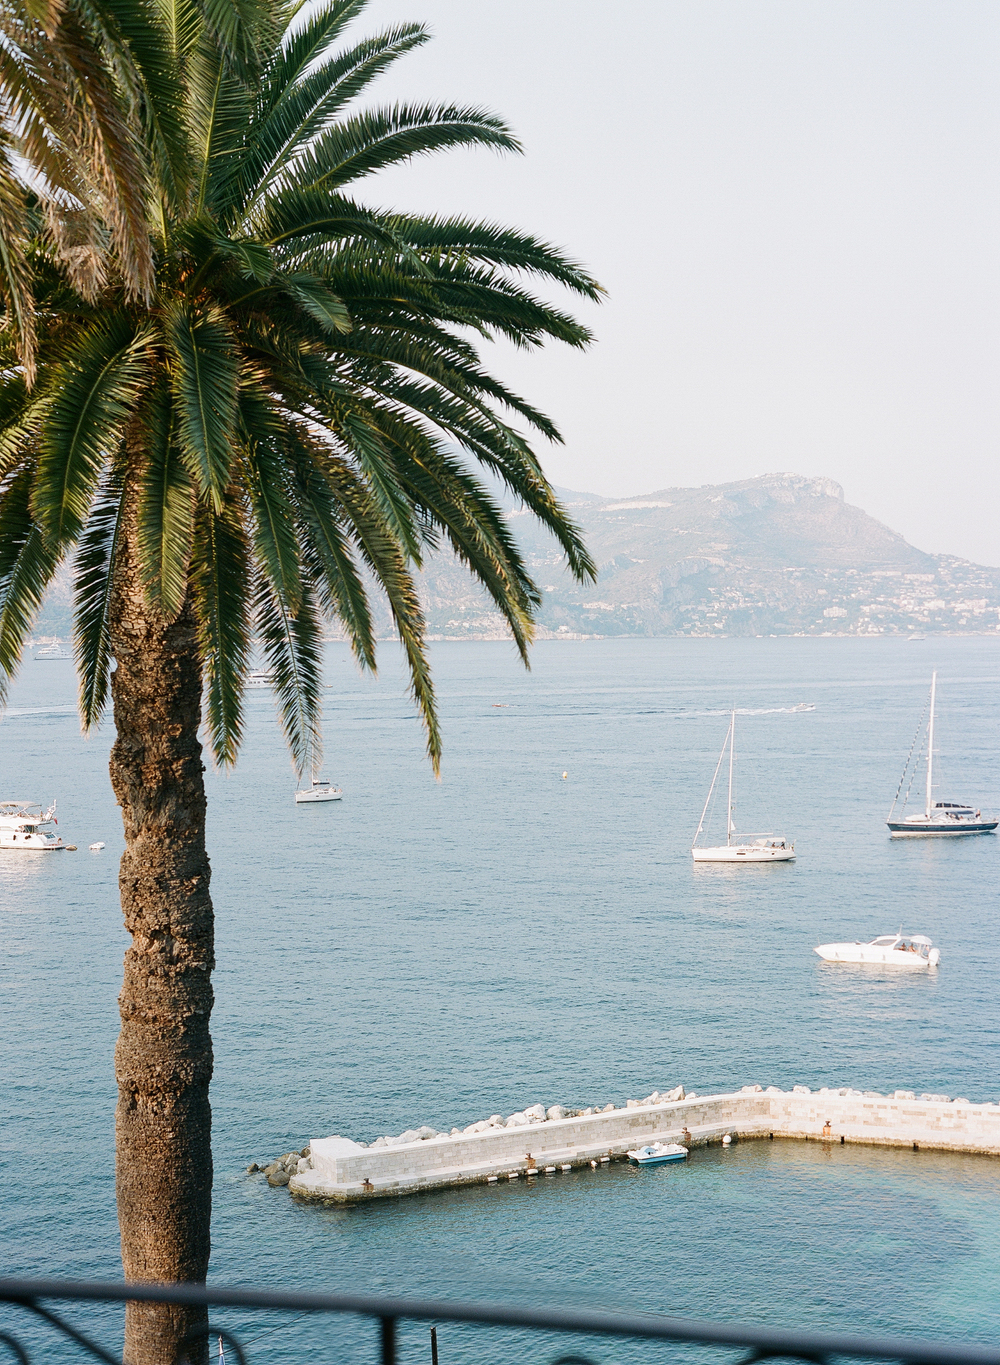 A palm tree looking out over the French Riviera; photo by Sylvie Gil